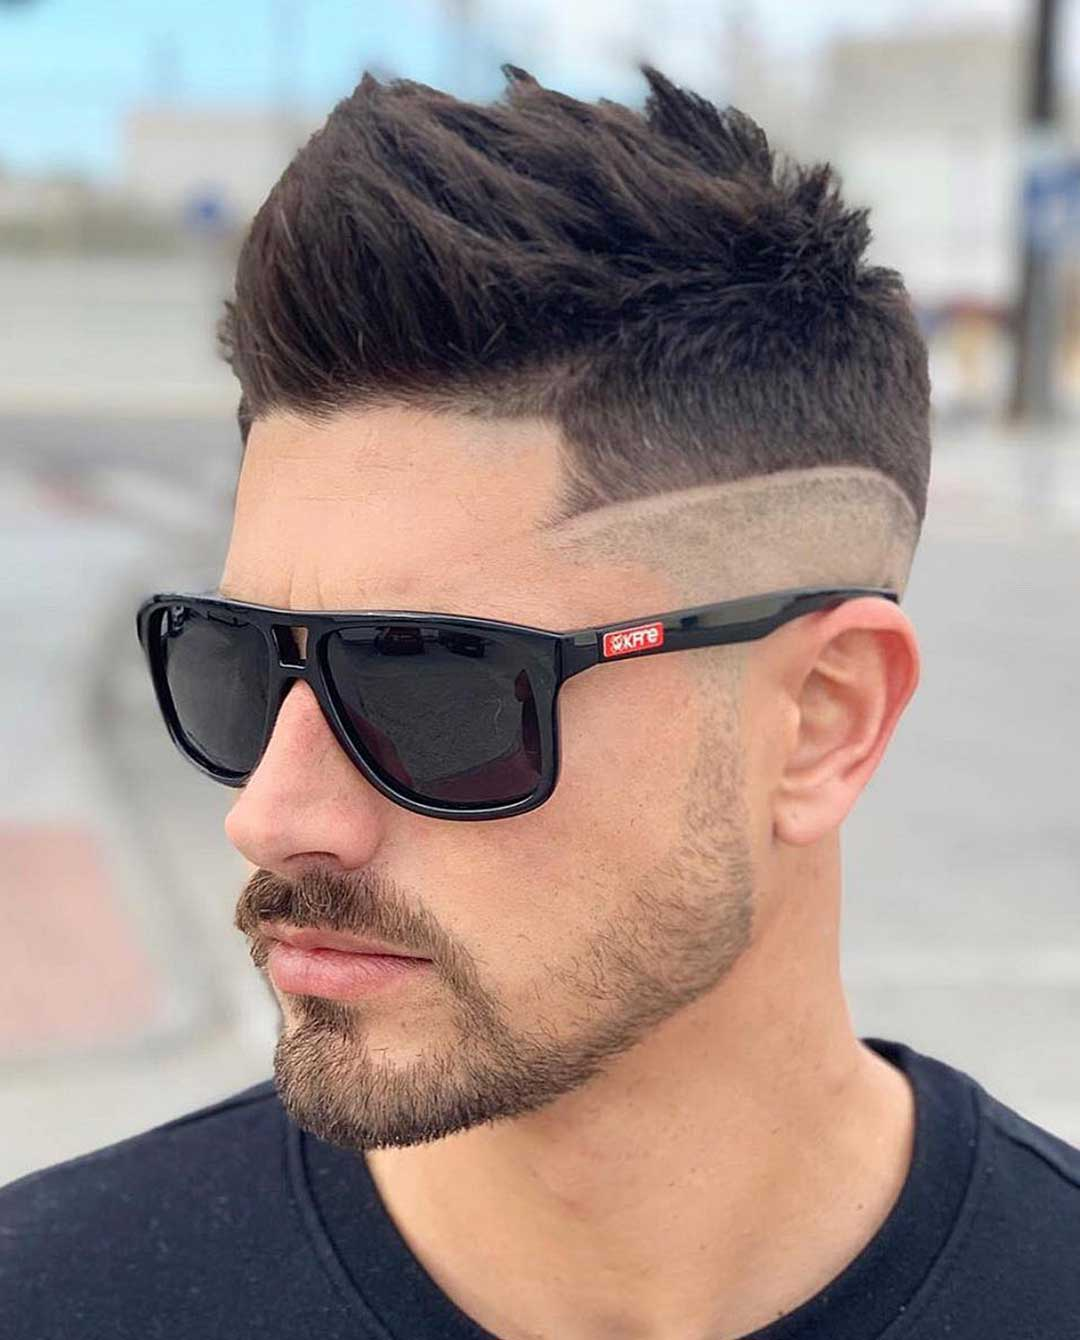 Fohawk with Drop Fade